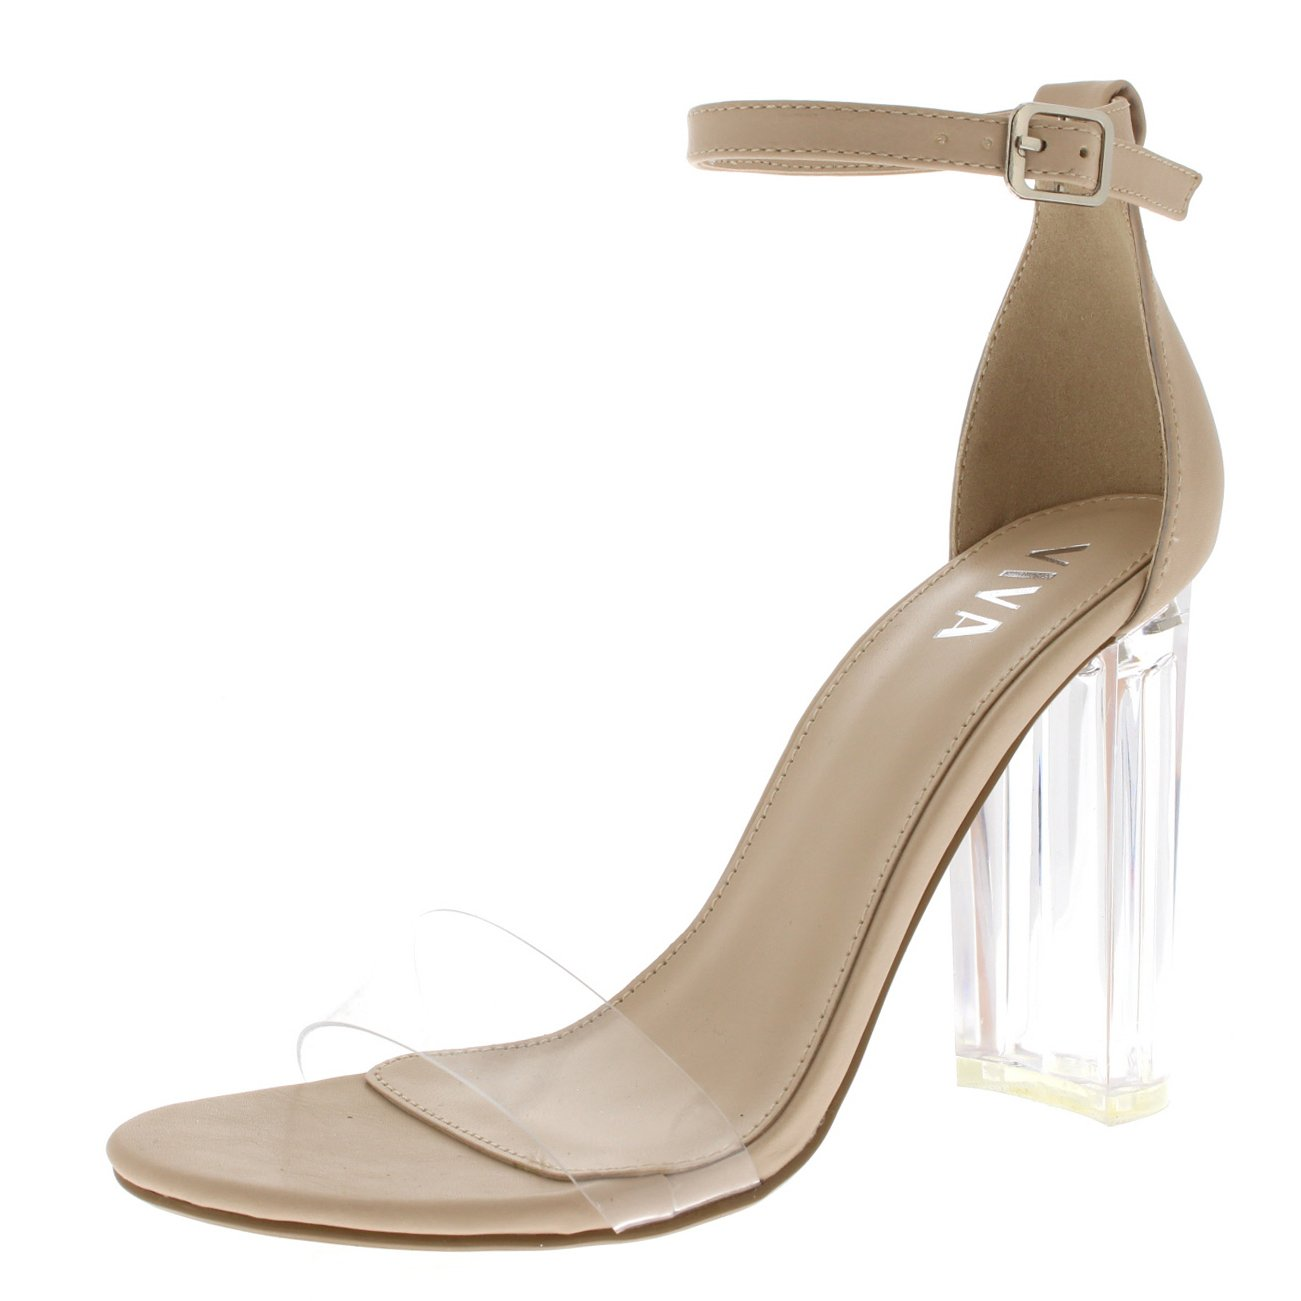 Viva Womens Glass Heel Ankle Strap High Heels Shoes Evening Party Sandals - Nude KL0278I 8US/39